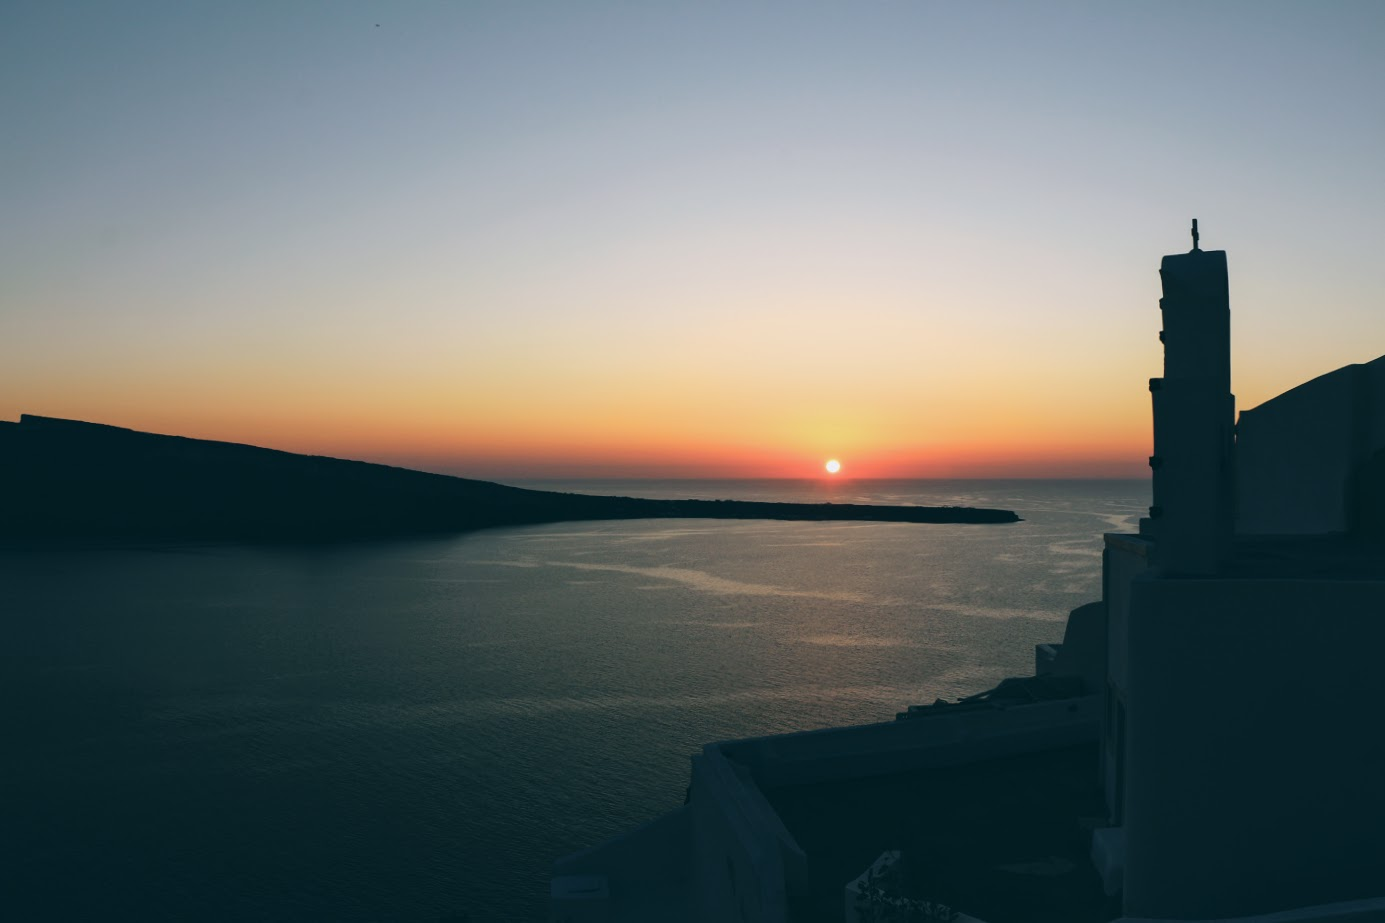 The unique sunset of Santorini watched from the hills and cliffs of Oia